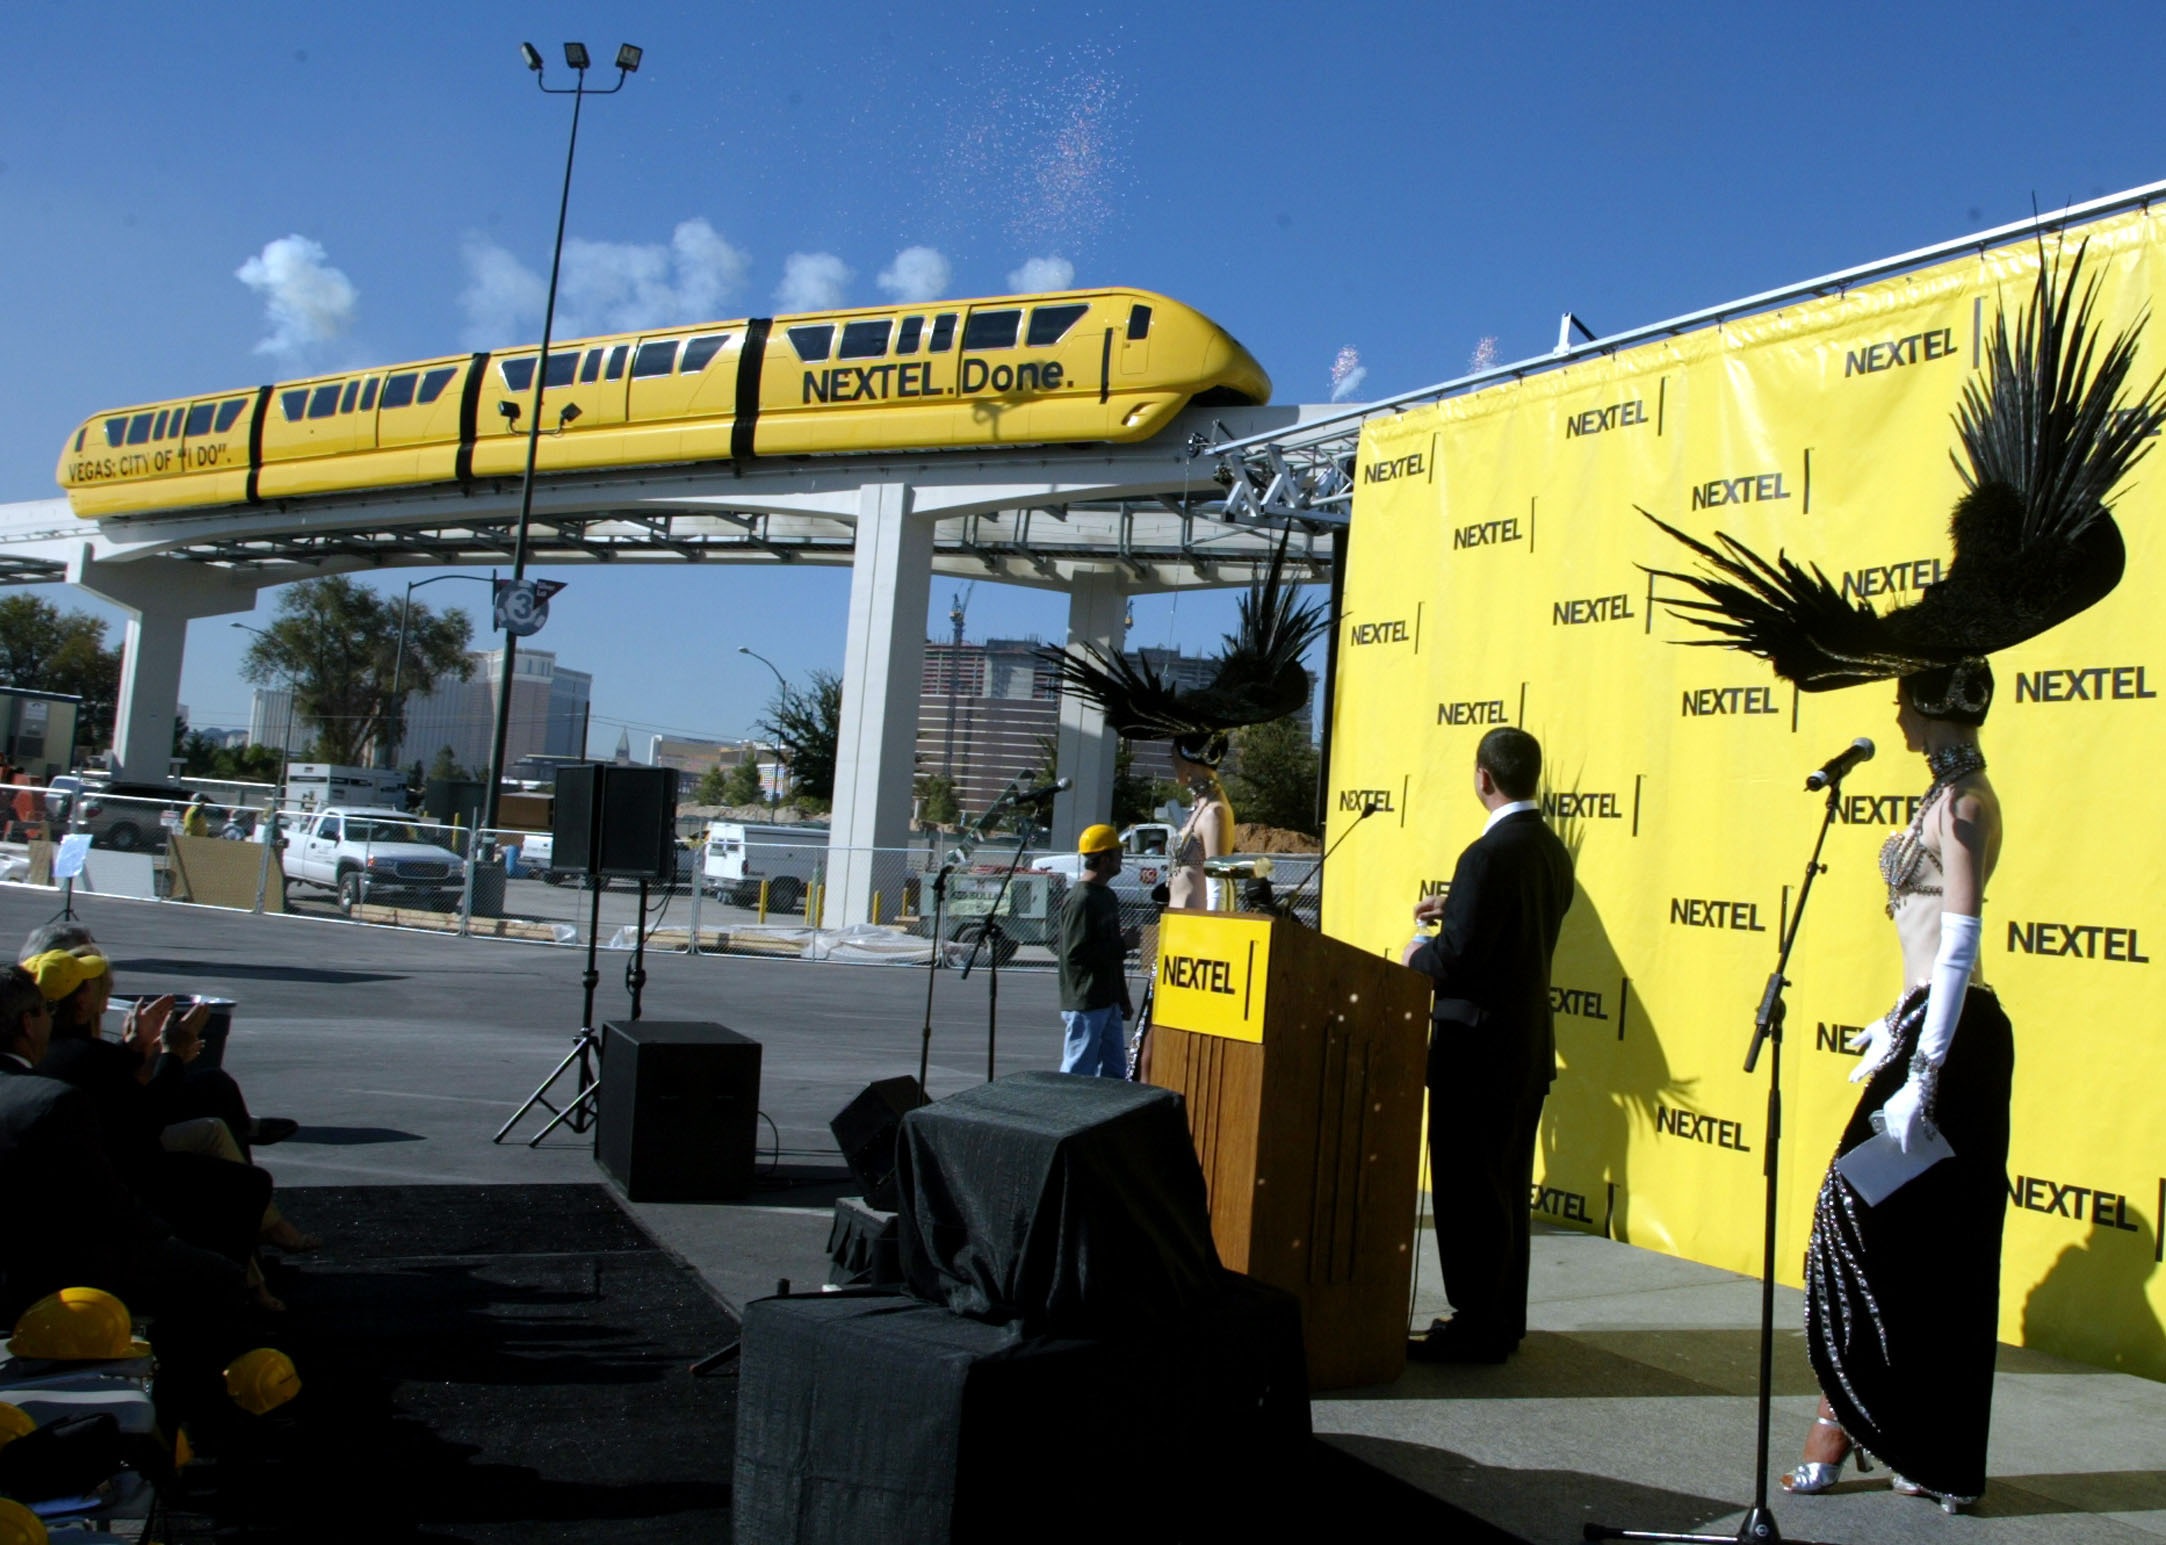 NEXTEL ANNOUNCES MULTI-MILLION DOLLAR DEAL WITH LAS VEGAS MONORAIL.